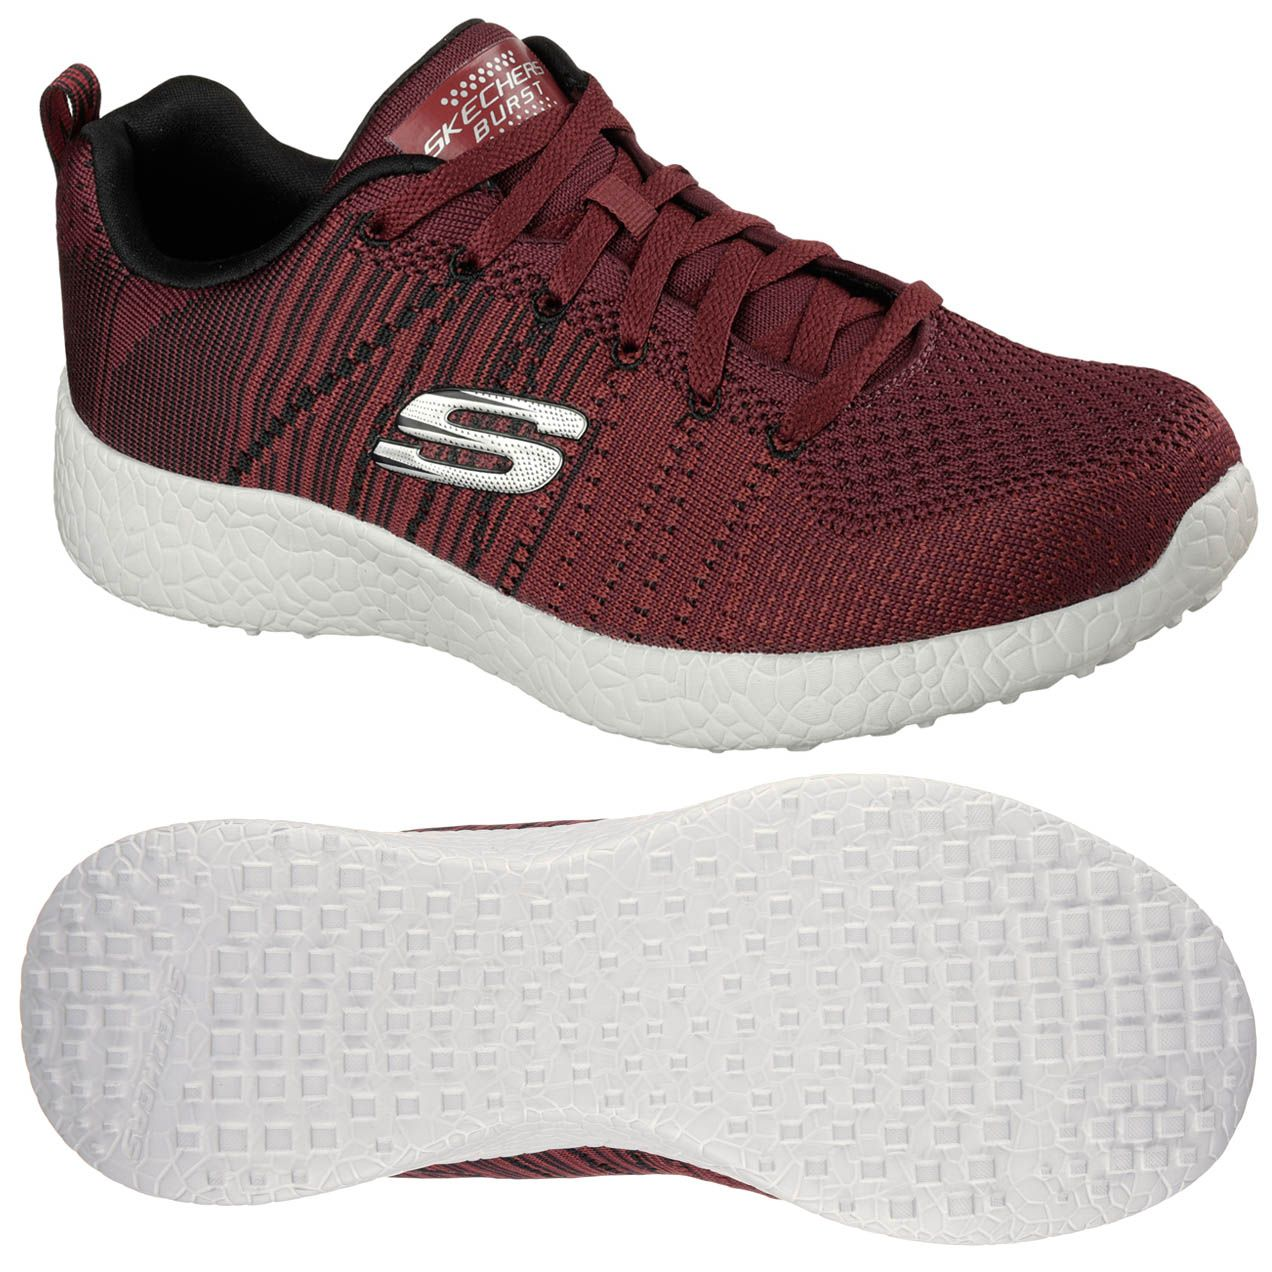 skechers burst in the mix mens athletic shoes